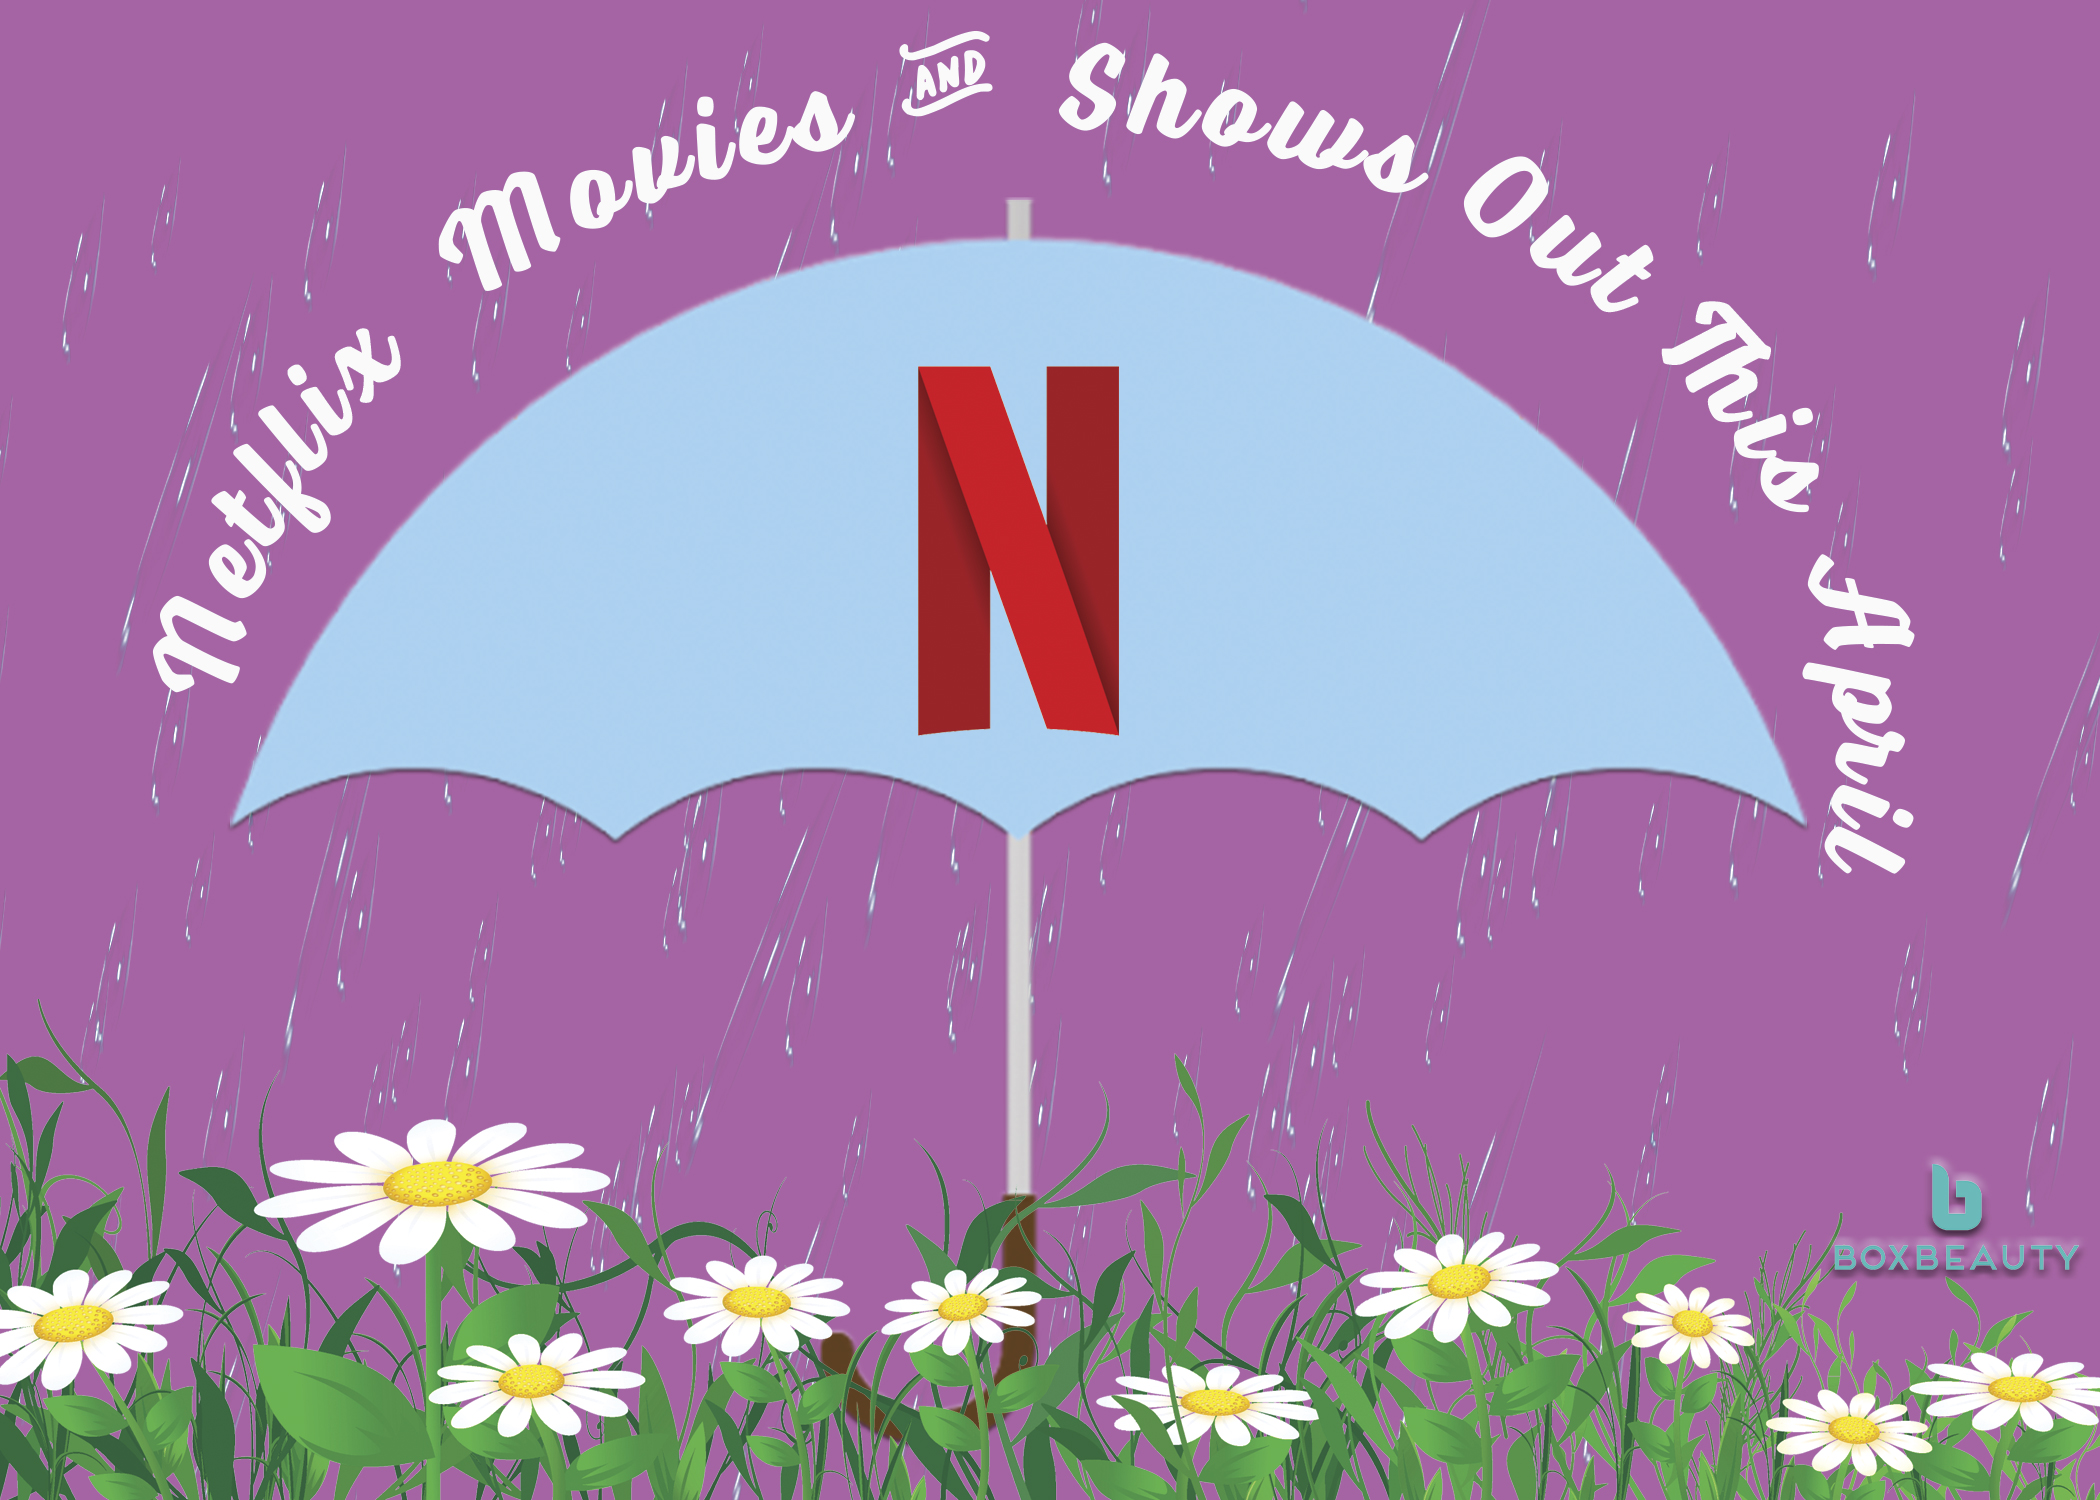 Netflix Movies and Shows Out this April